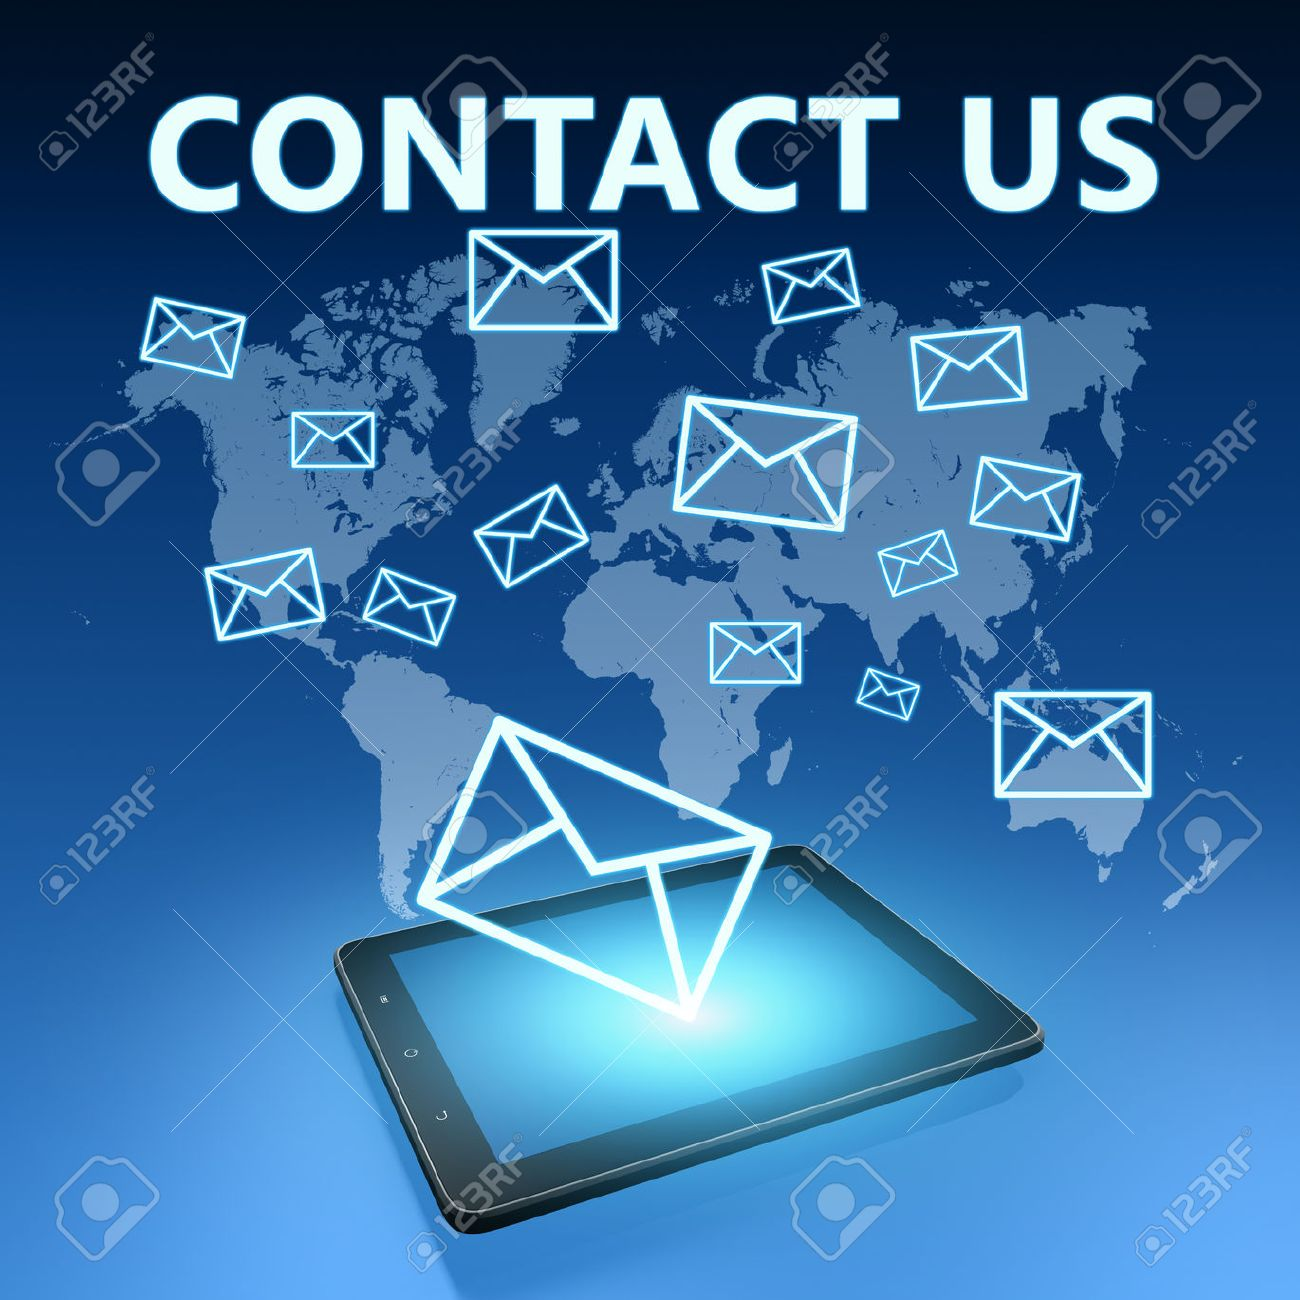 Contact us illustration with tablet computer on blue background - 31829184